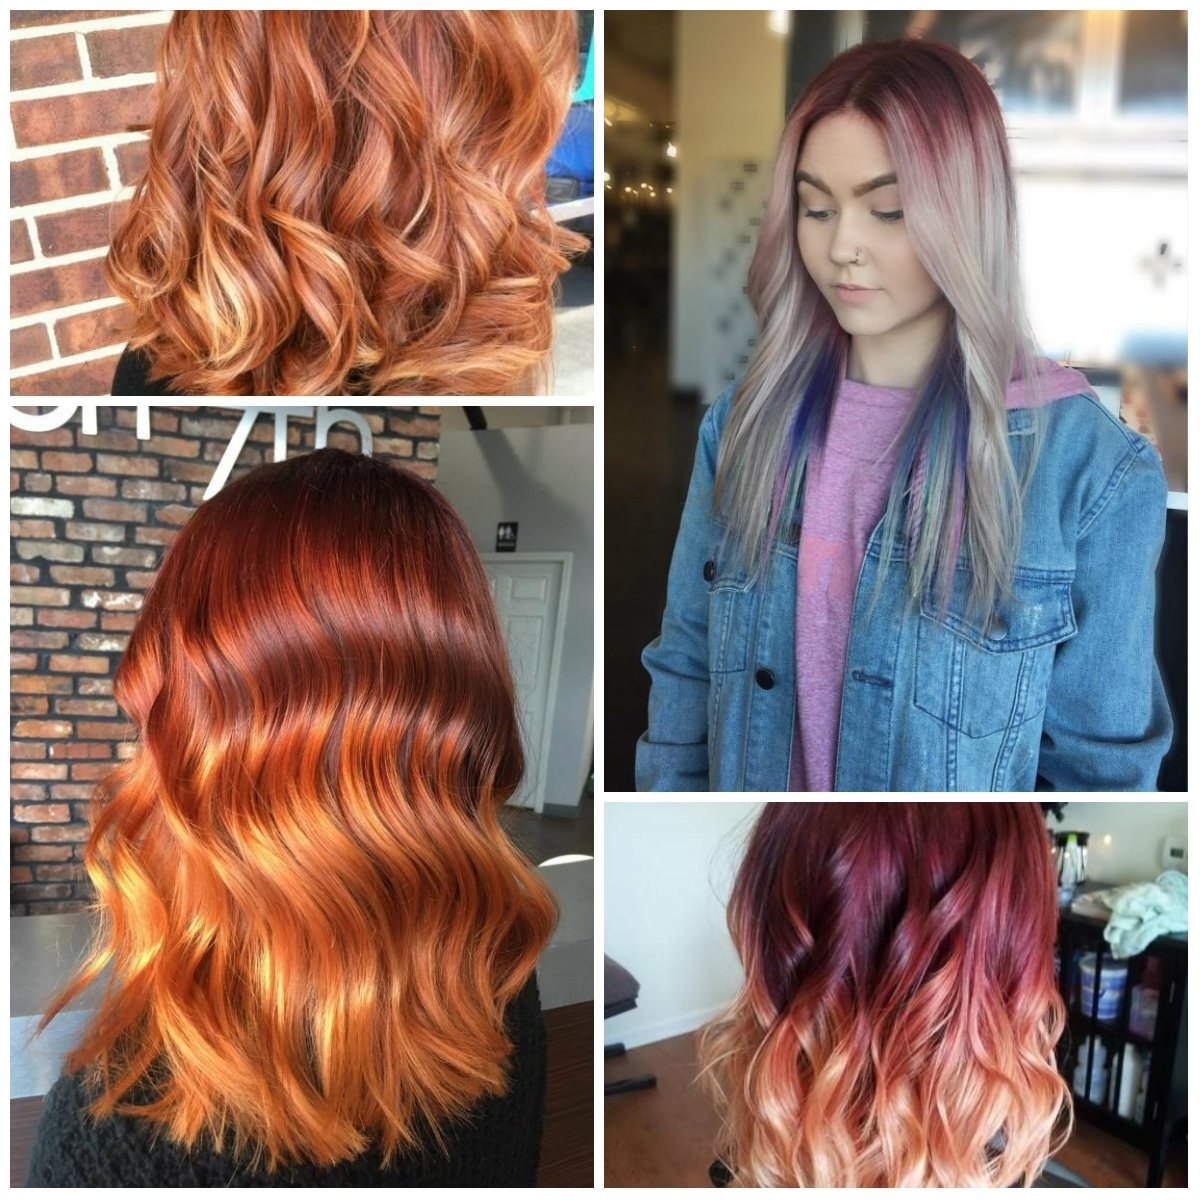 10 Great Red And Blonde Hair Color Ideas red blonde hair color ideas for 2017 best hair color ideas 1